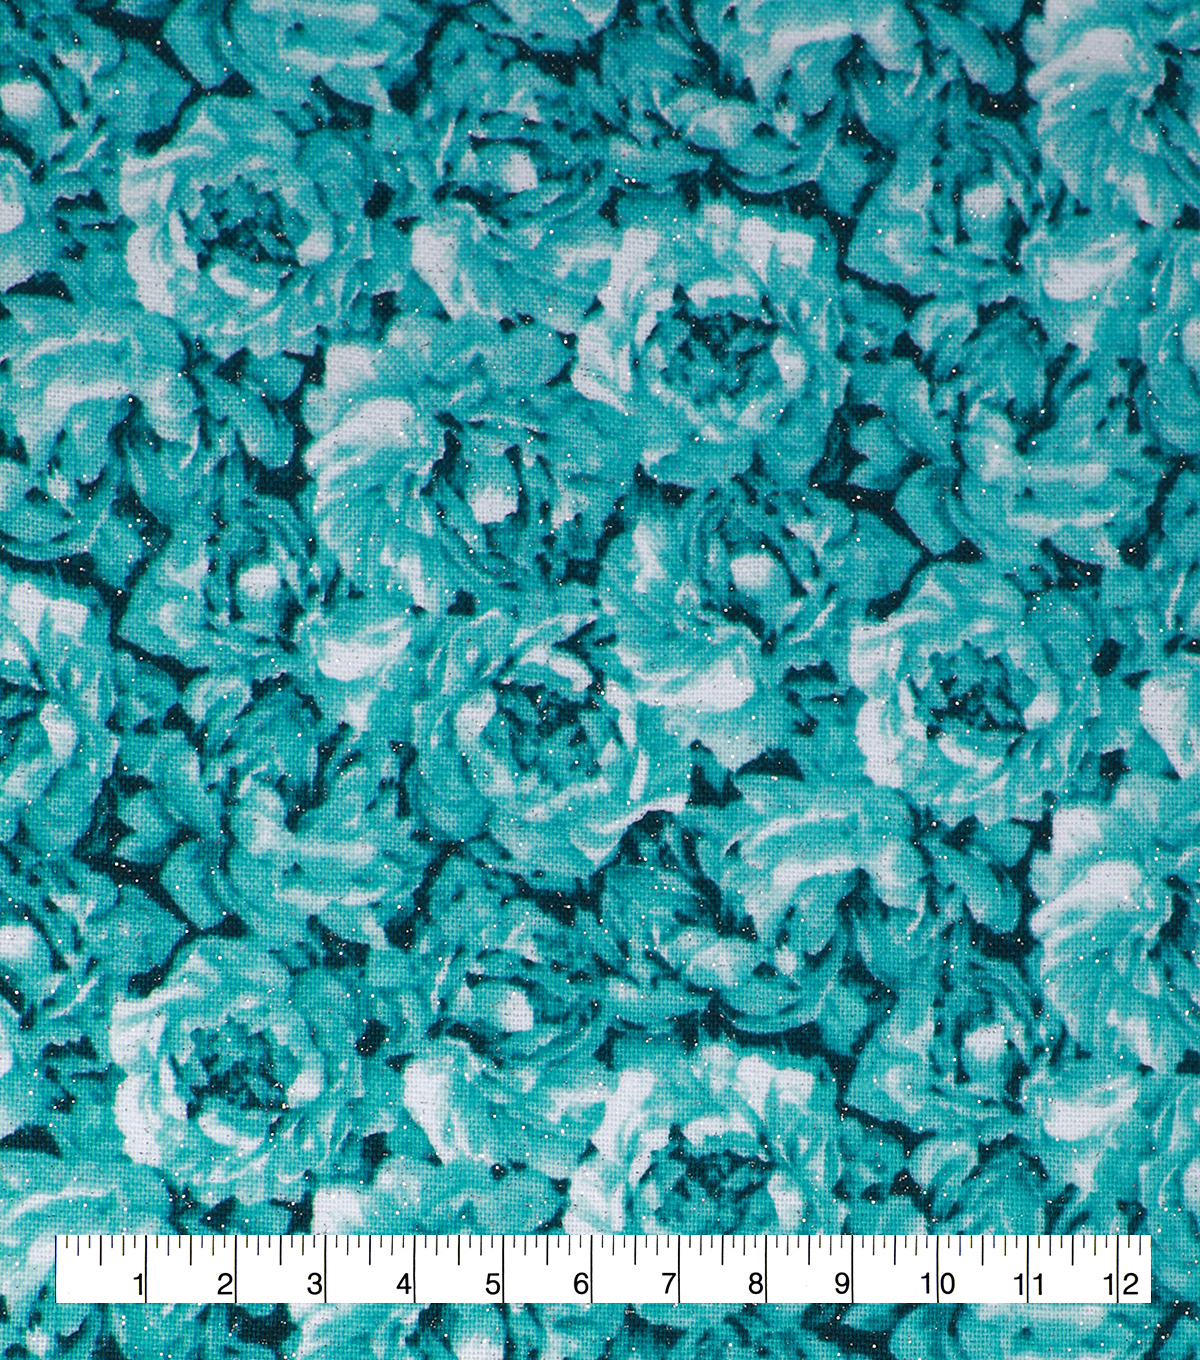 Keepsake Calico Cotton Fabric-Teal Glitter Packed Flowers